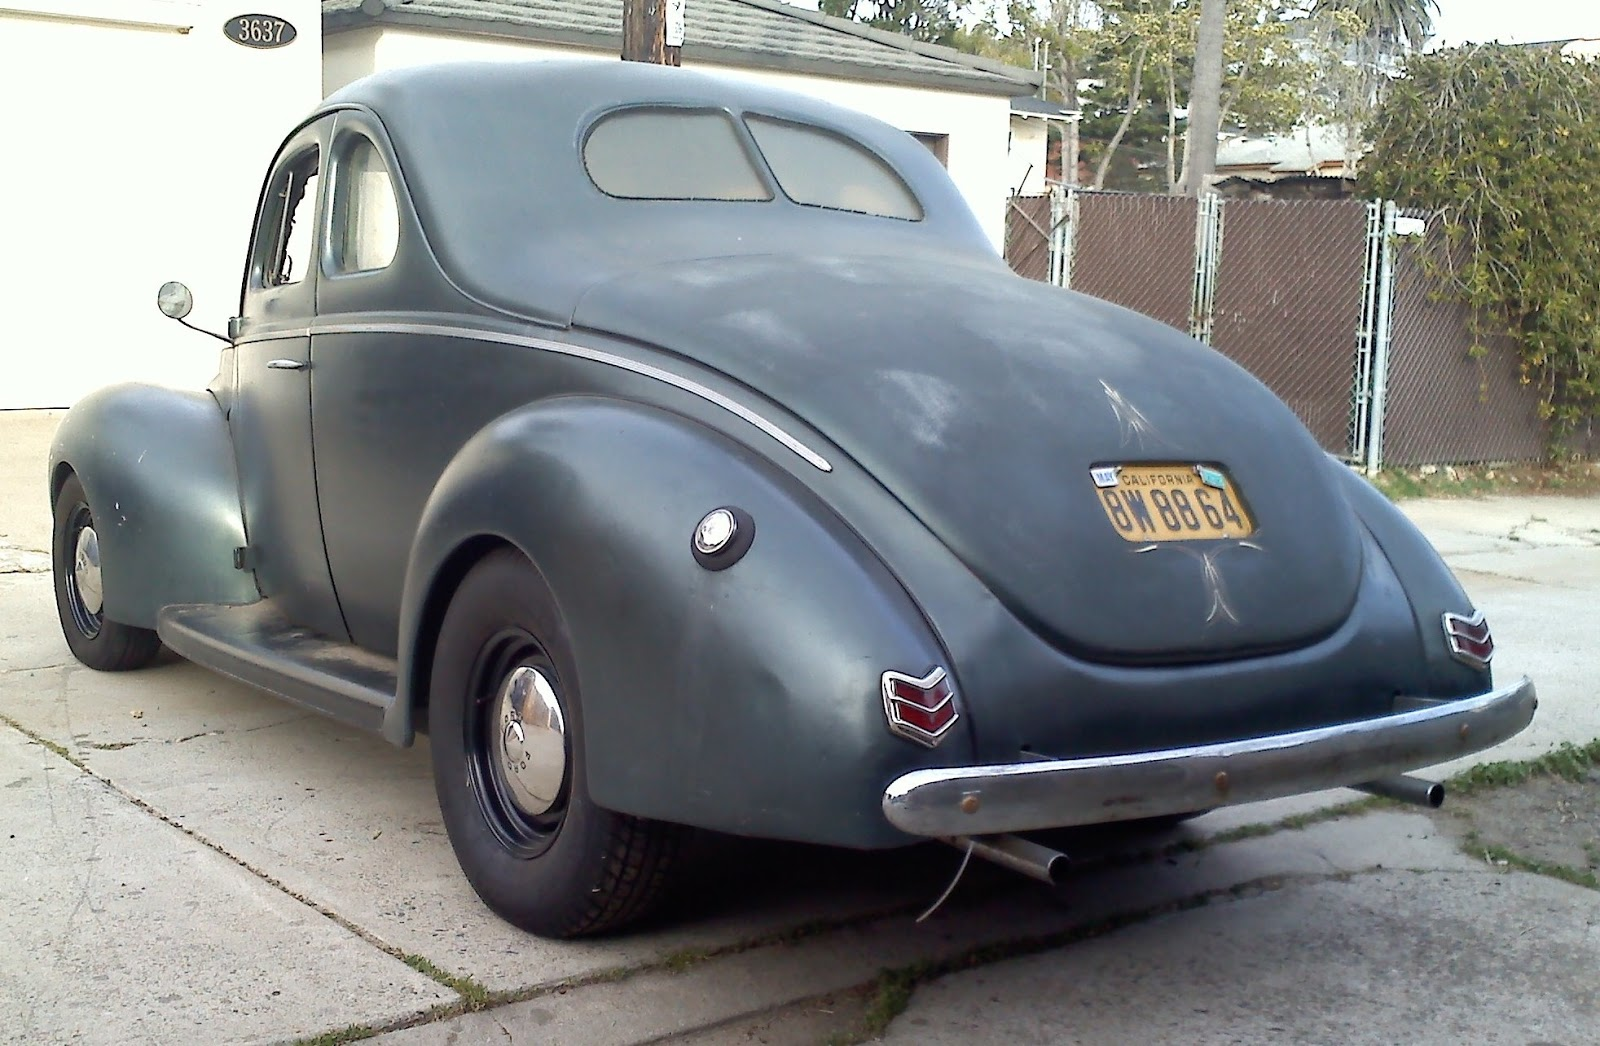 1940 Ford coupe craigslist